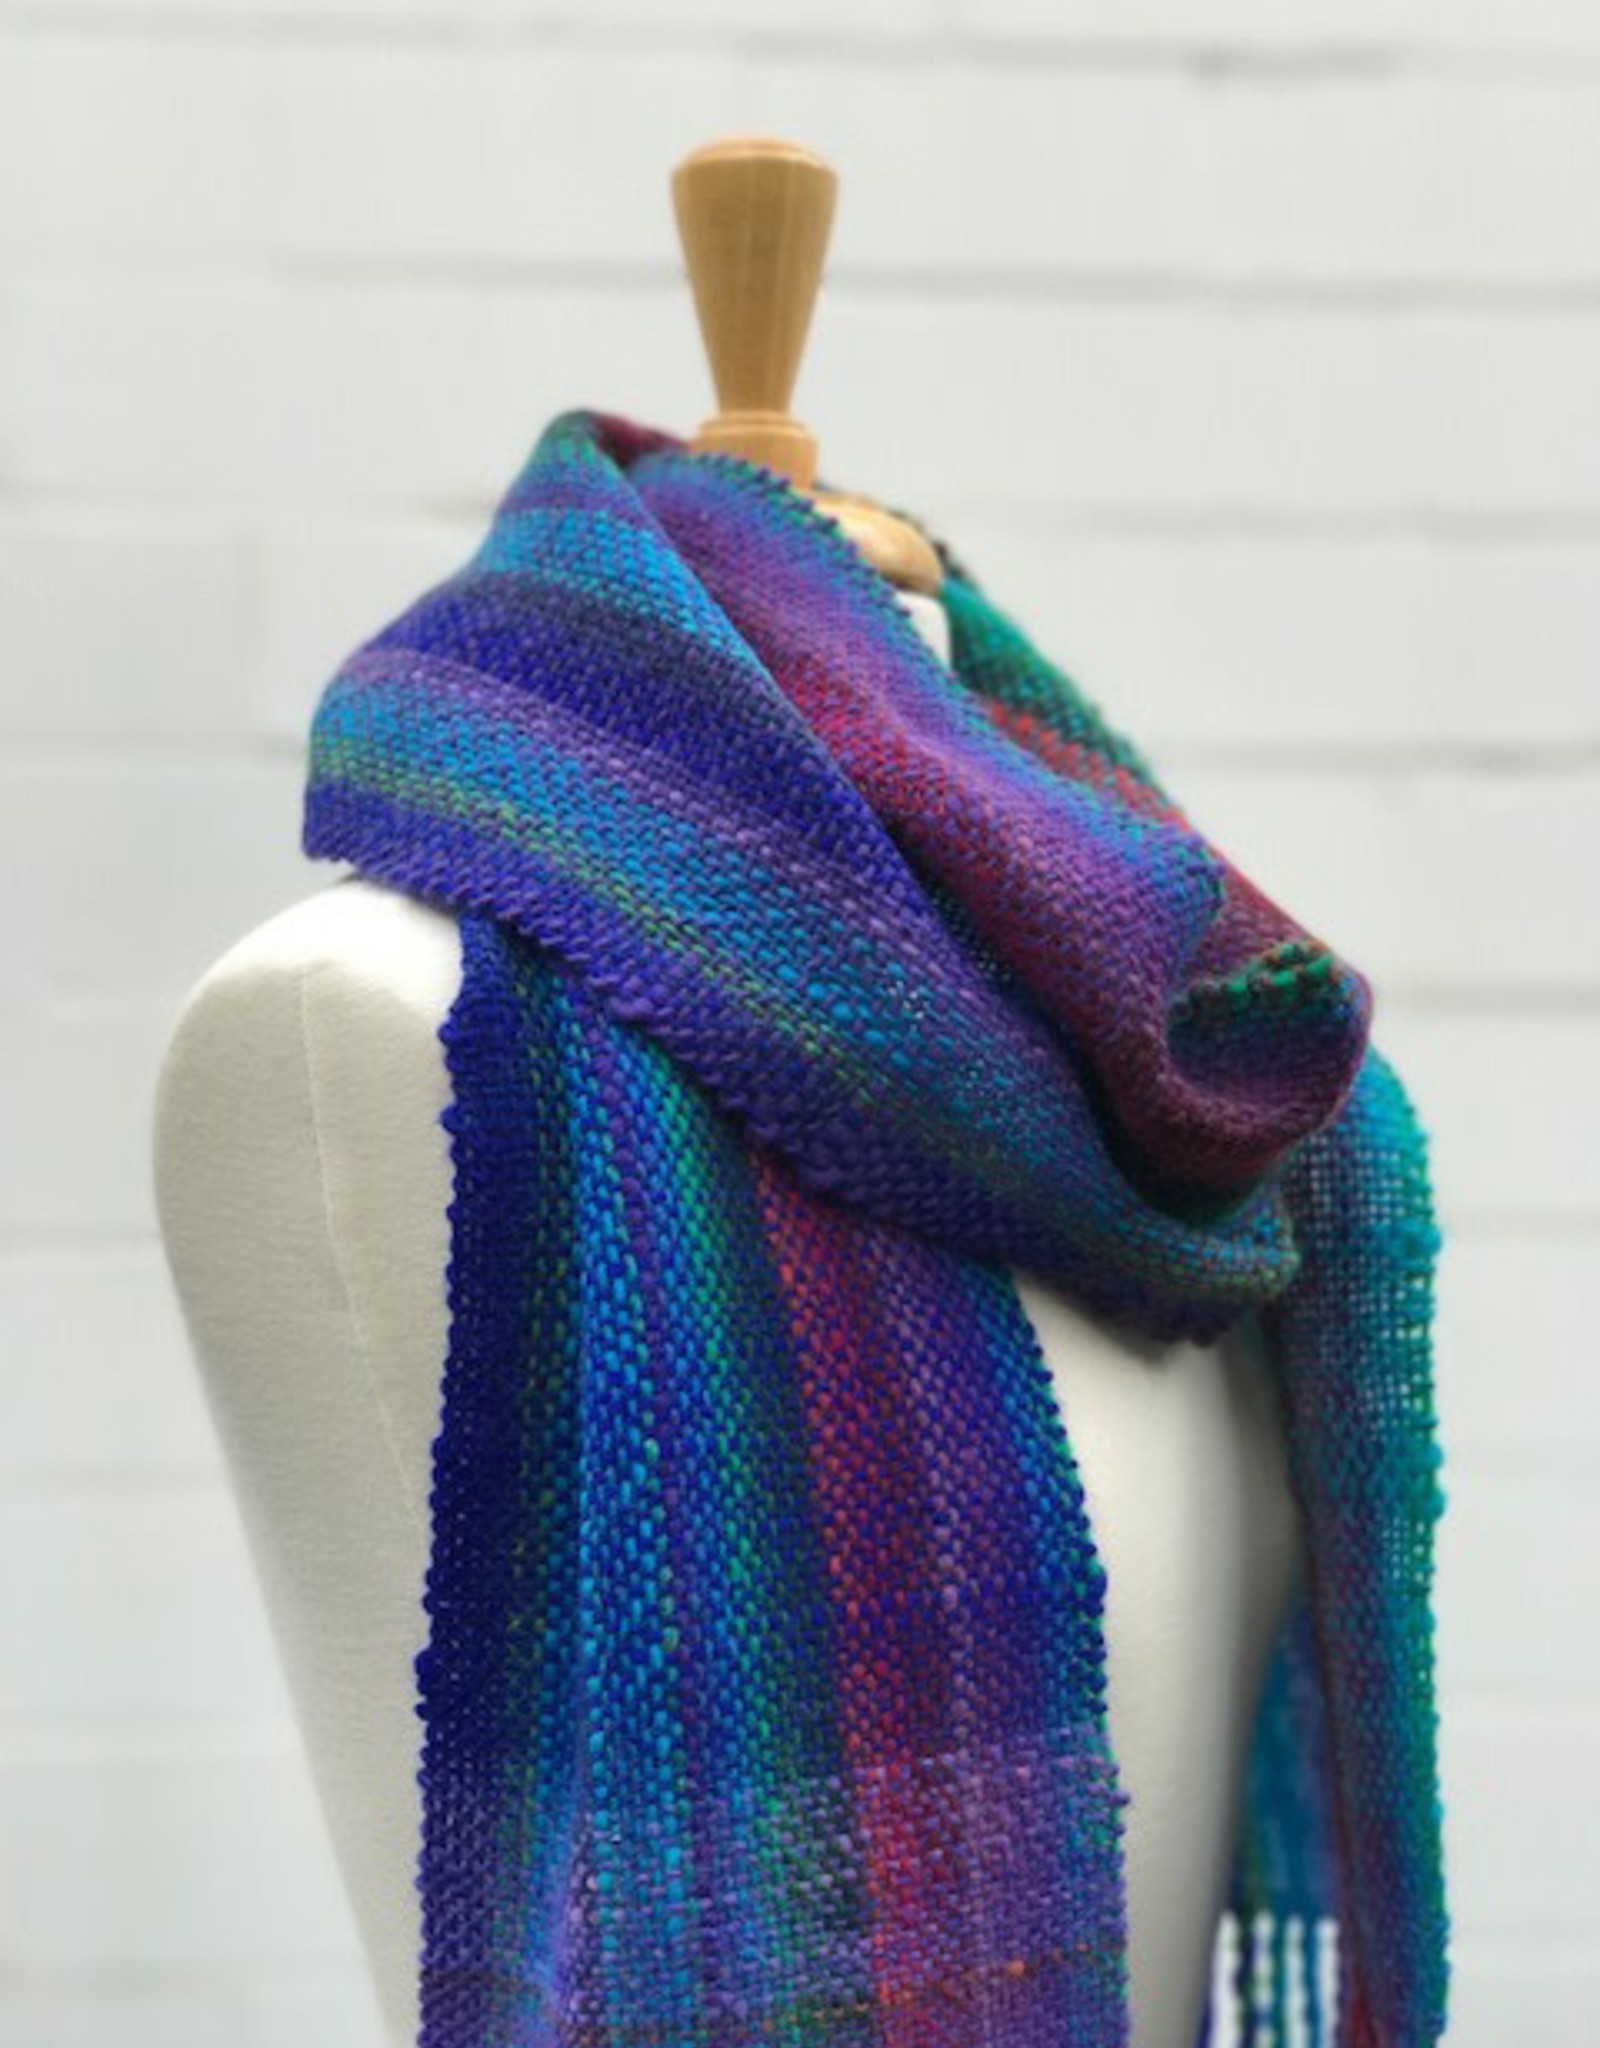 Introduction to Rigid Heddle Weaving